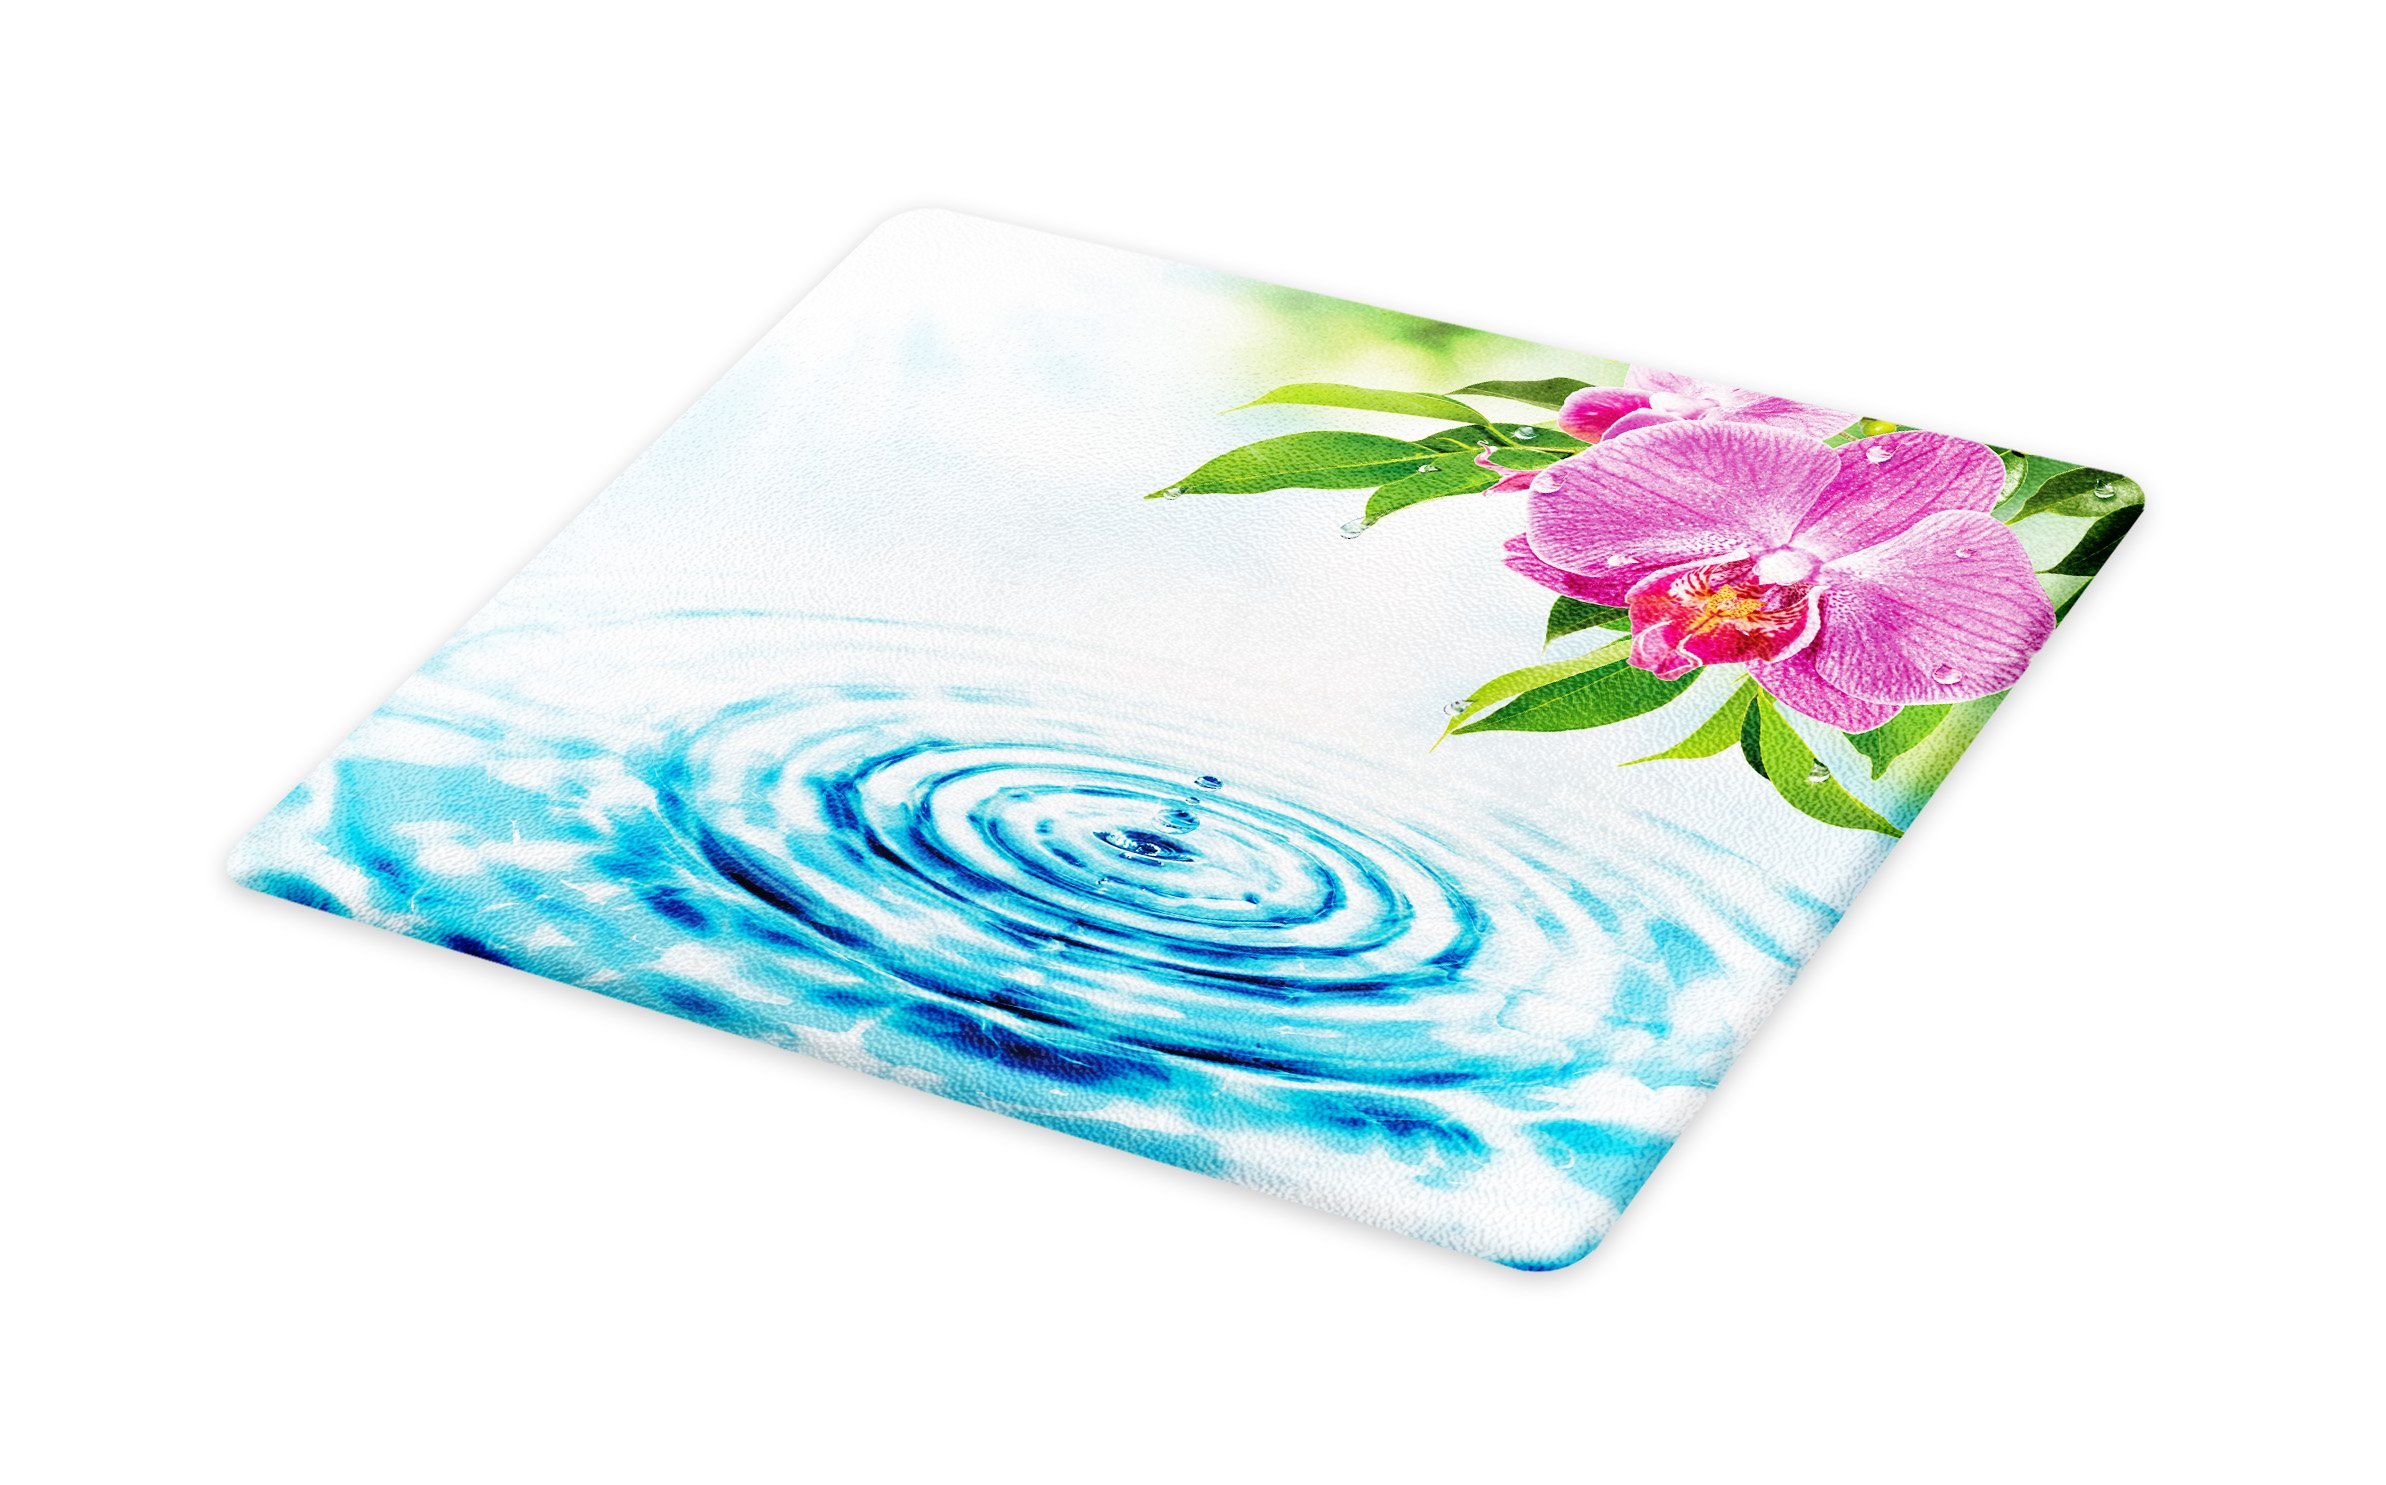 Lunarable Floral Cutting Board, Natural Inspired Relaxation Orchid Petals down on Water Spa Meditation Zen Concept, Decorative Tempered Glass Cutting and Serving Board, Large Size, Multicolor